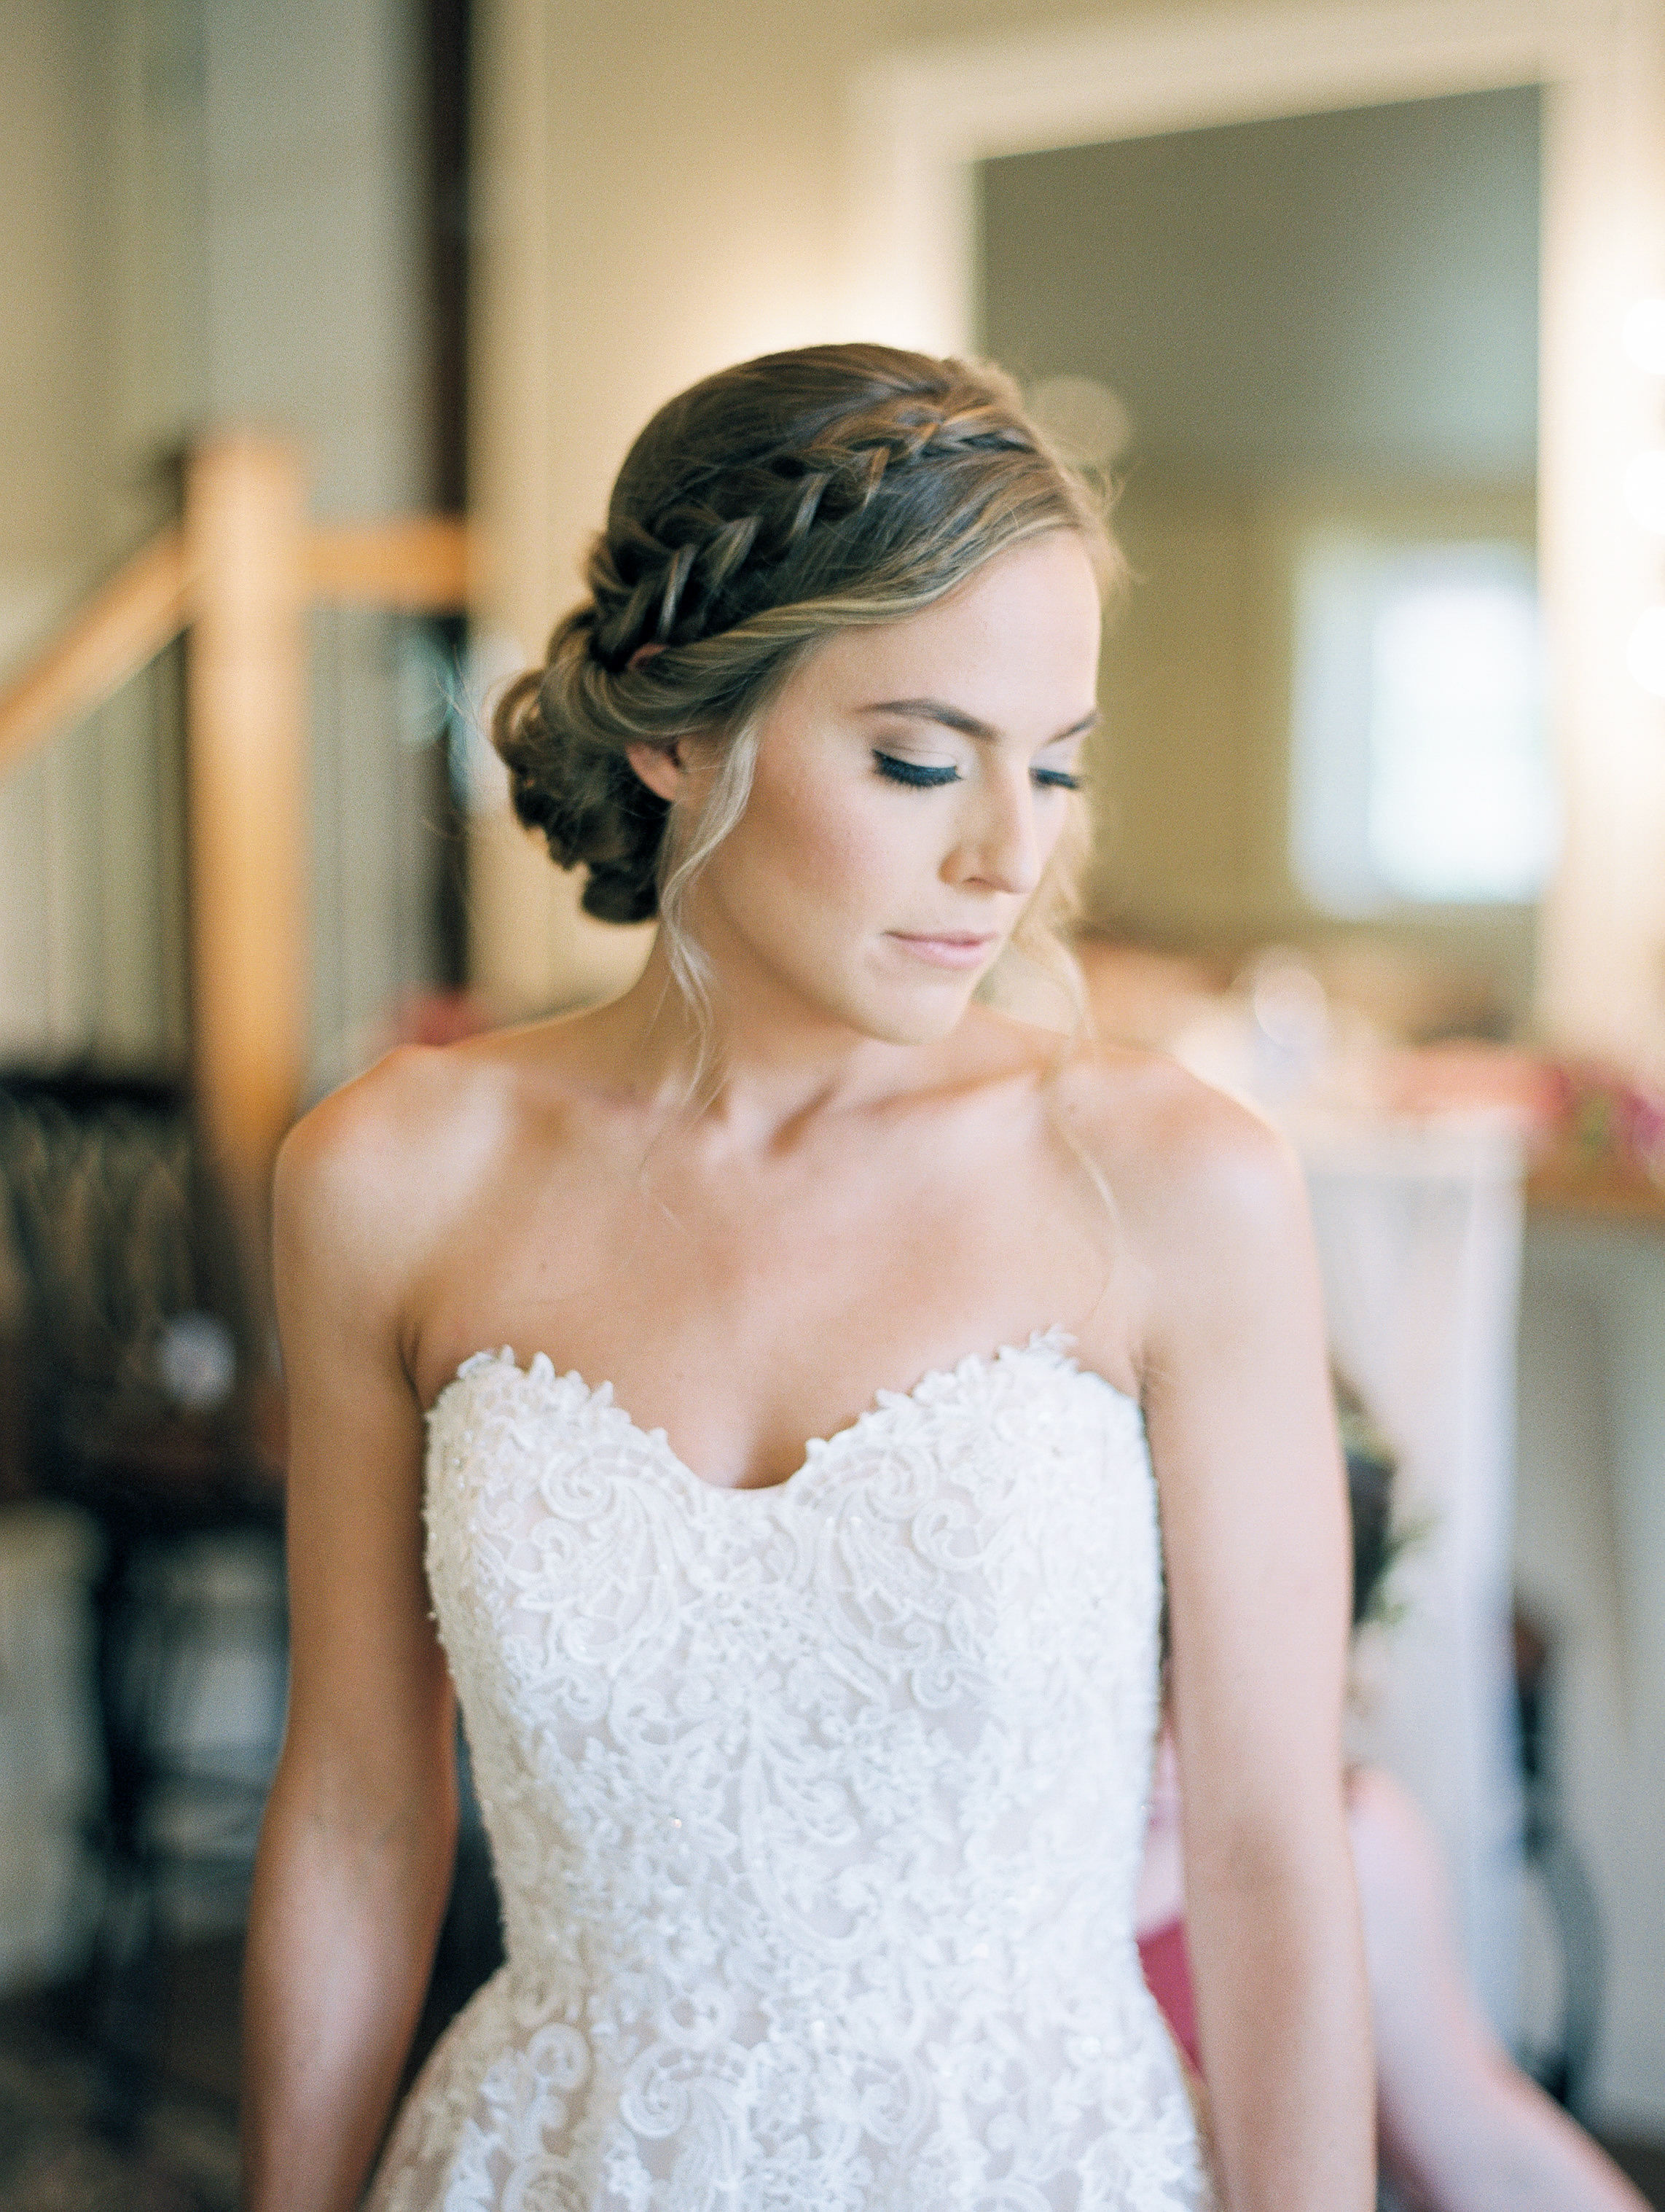 wedding hair stylists estes park co | fade haircut